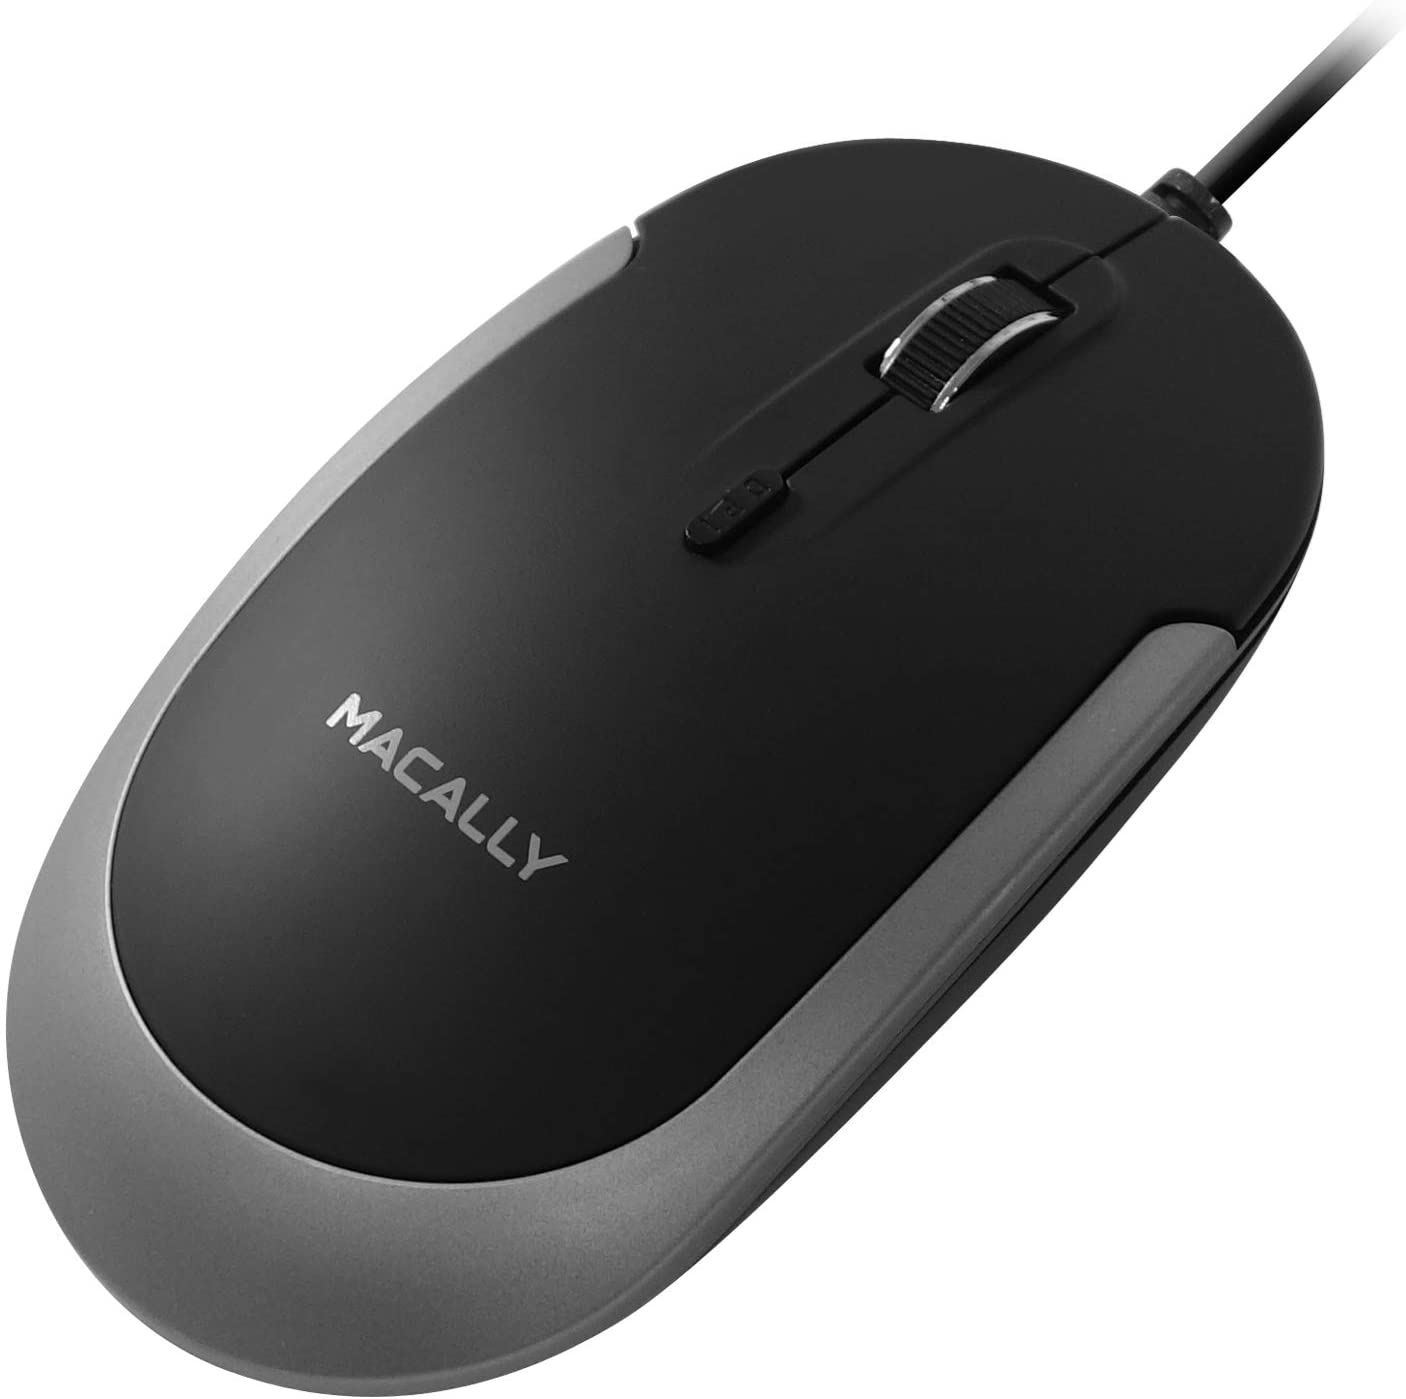 Picture of Macally USB-C Optical Silent Mouse - Black